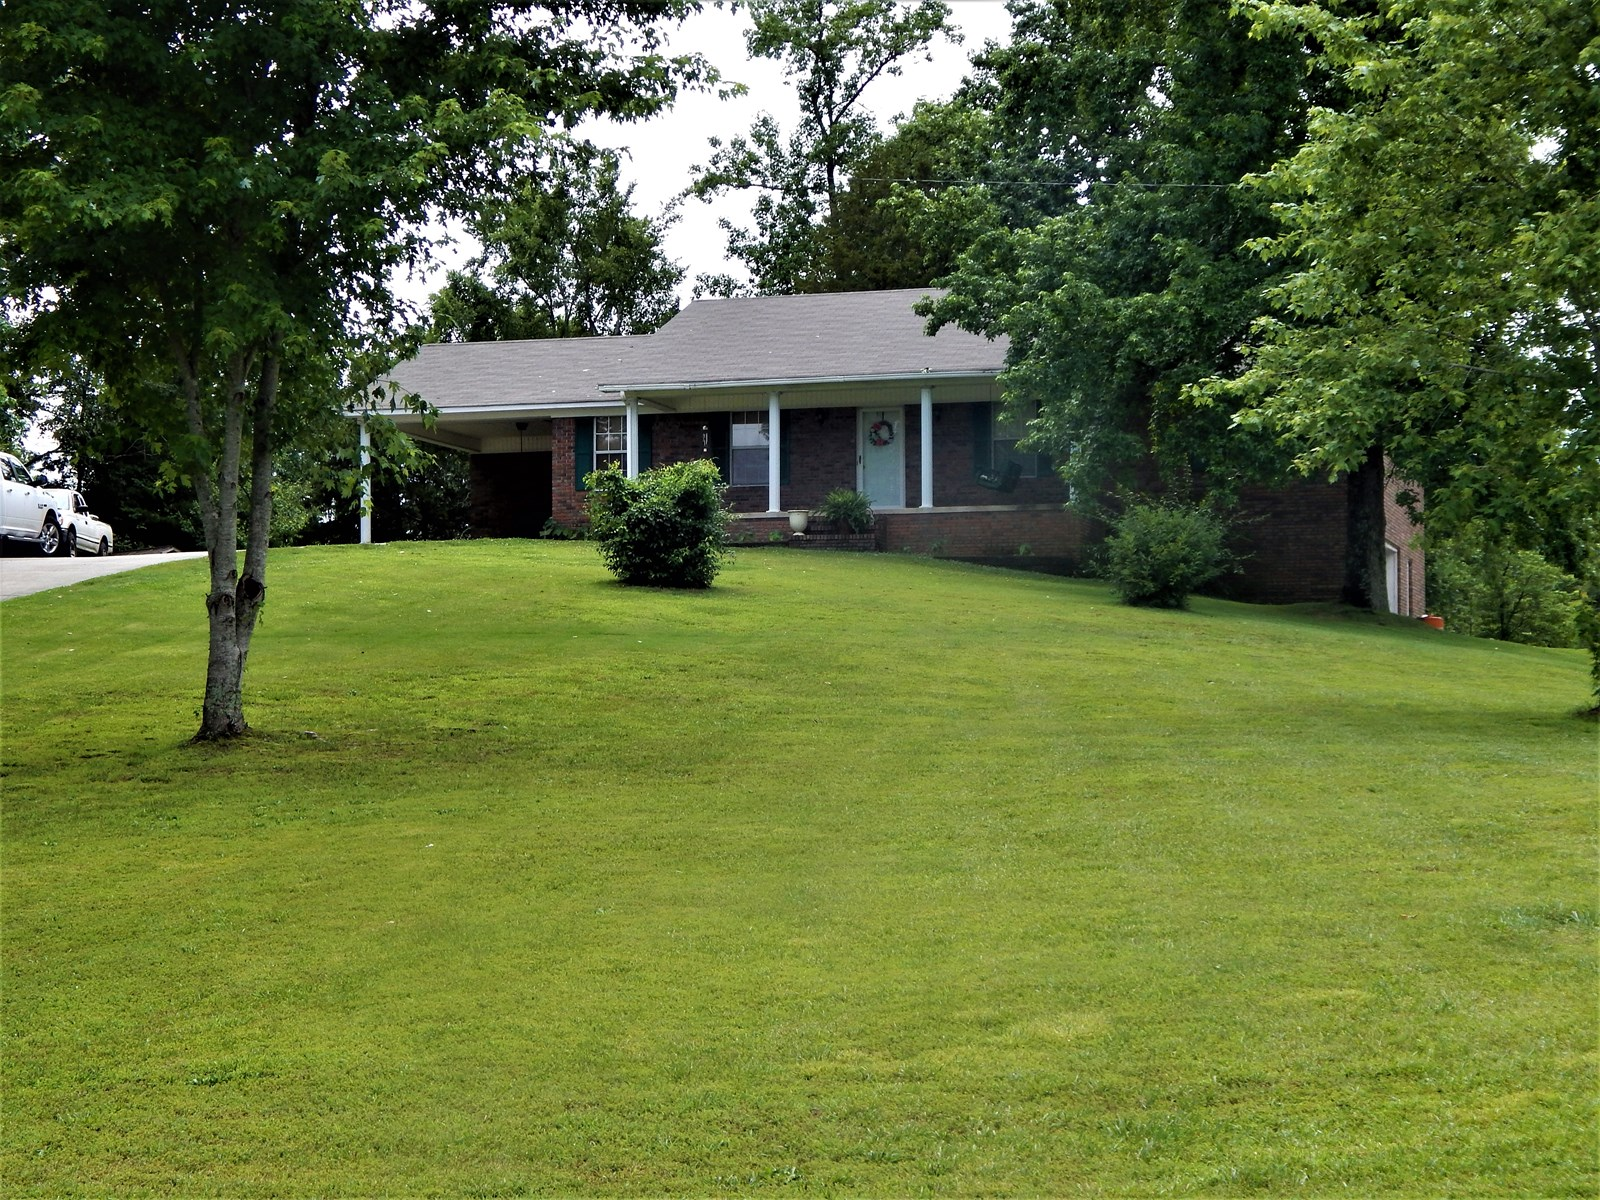 SALE PENDING TN COUNTRY HOME 11.9 ACRE 3 BEDROOM 3 BA SPRING